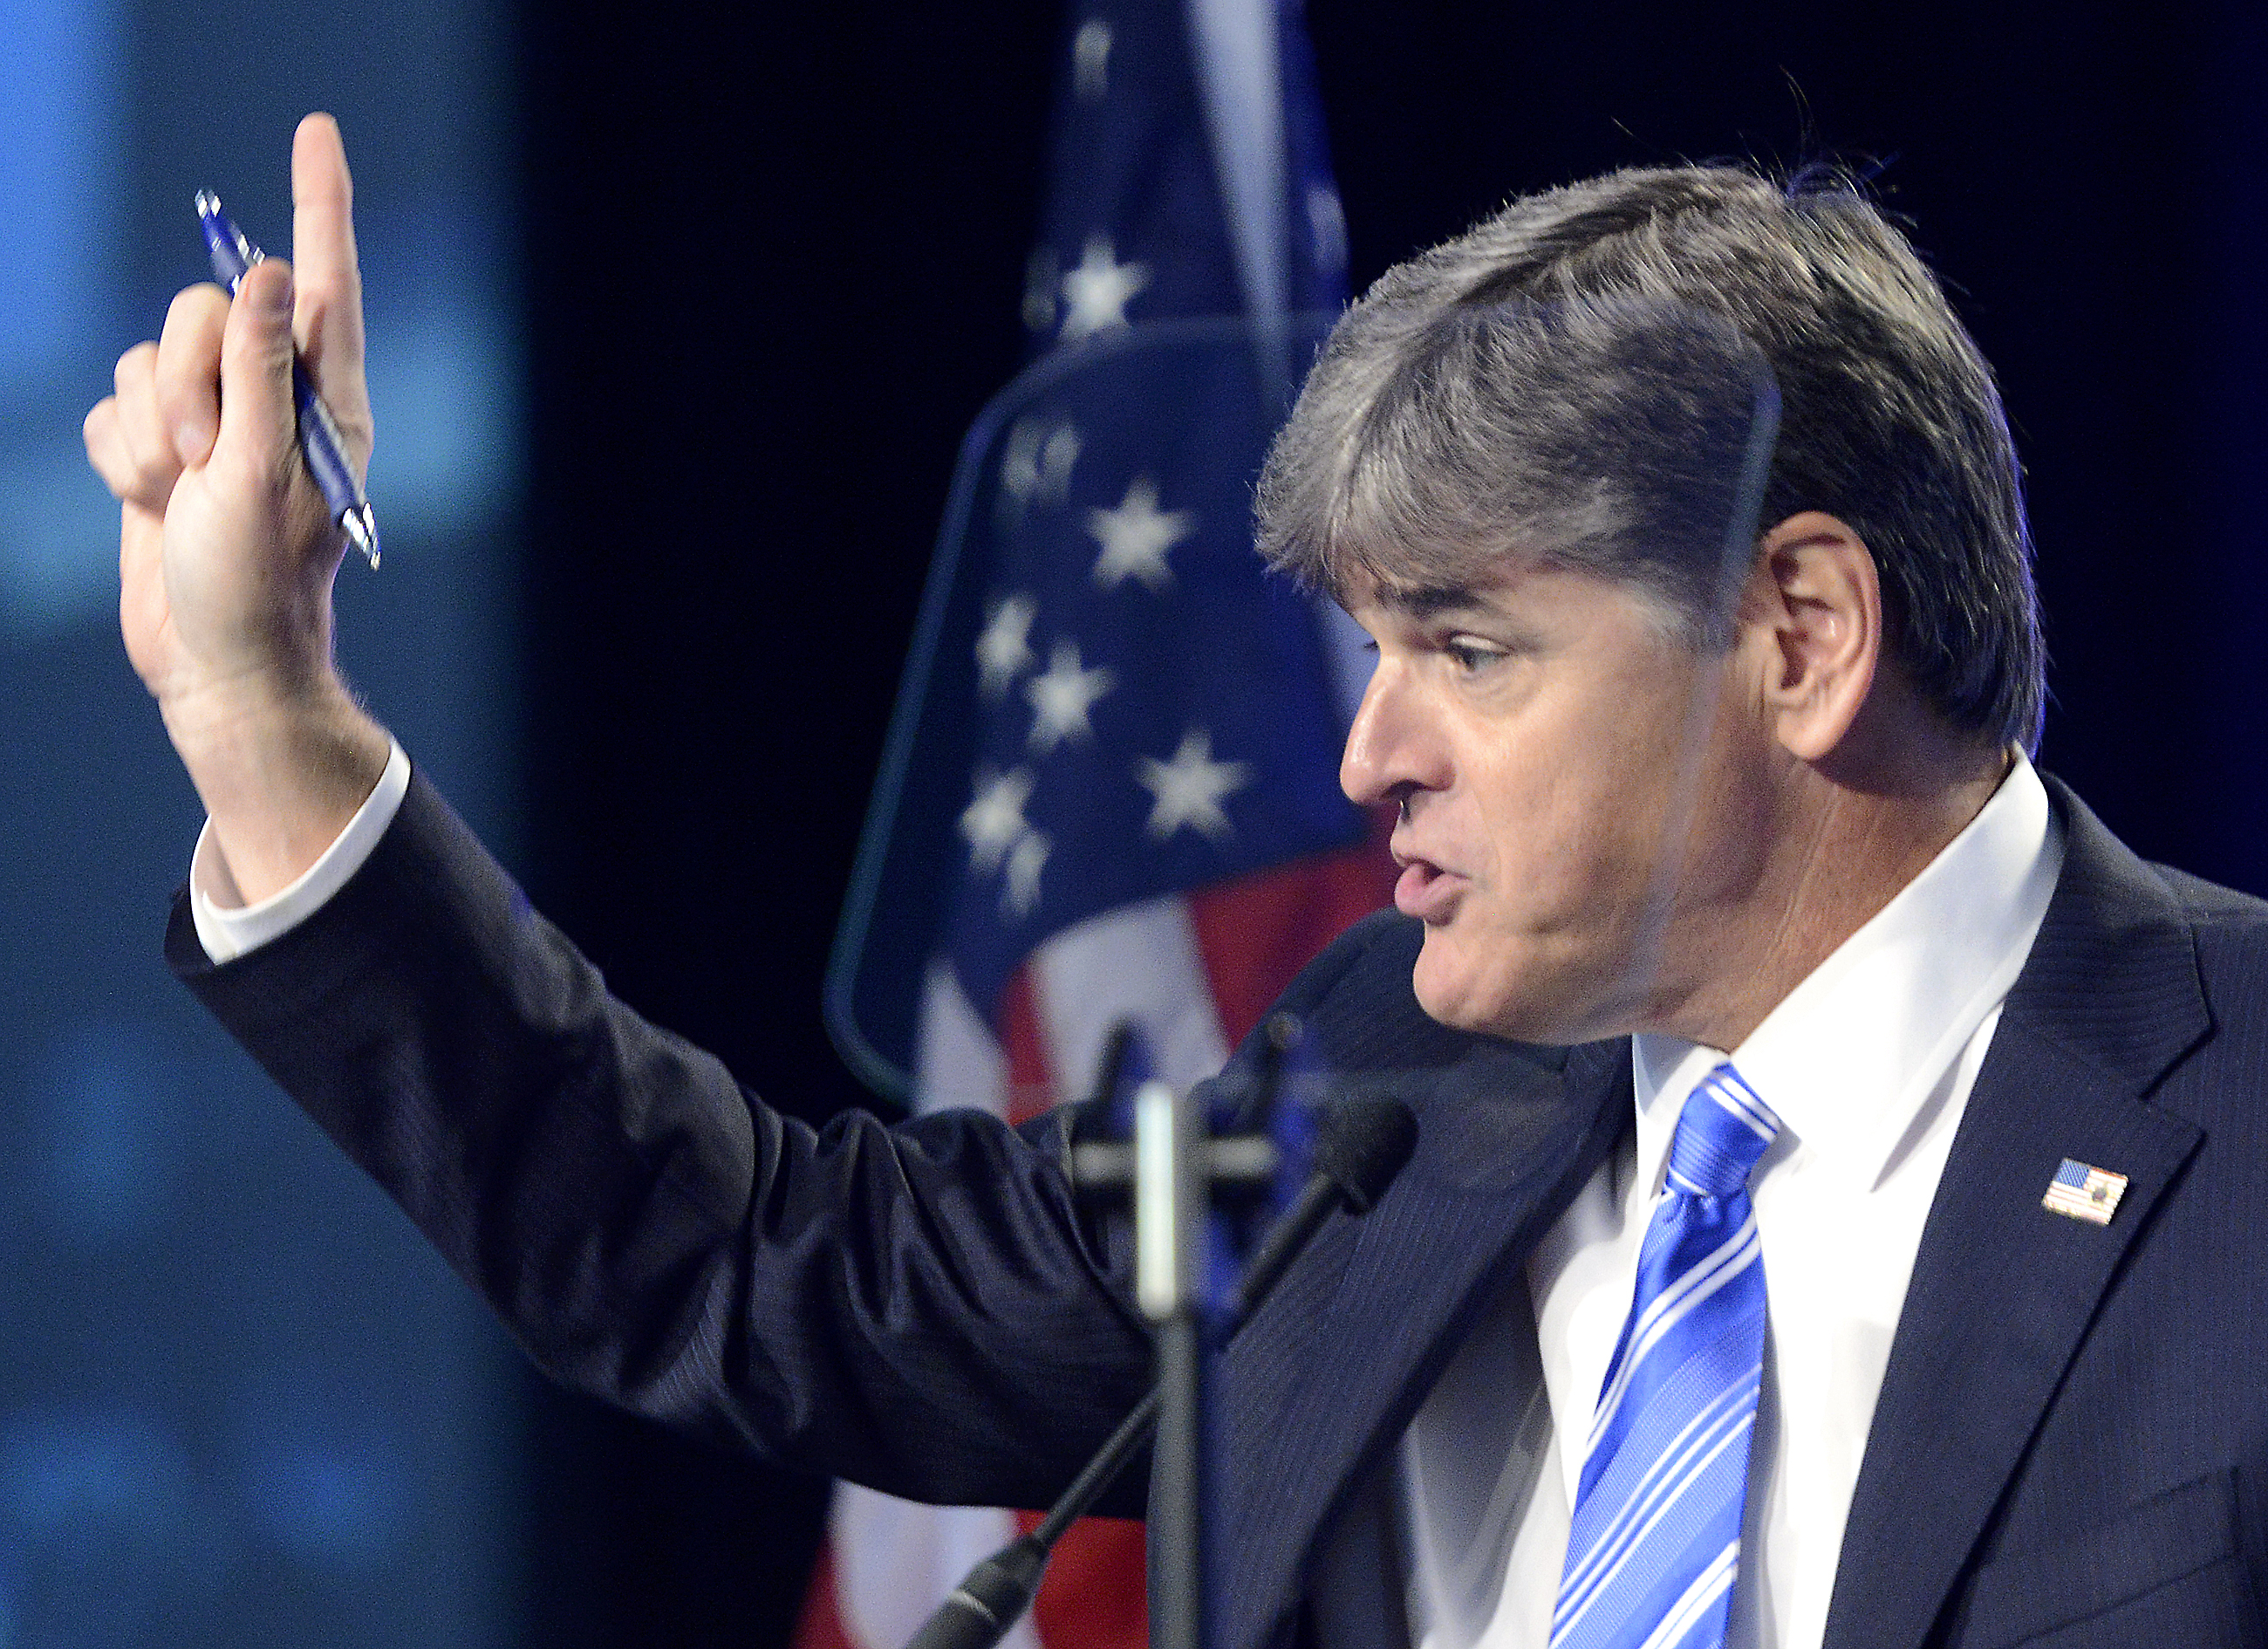 Sean Hannity Falls For Hoax Website Claiming US Is Taking In 250,000 Syrian Refugees